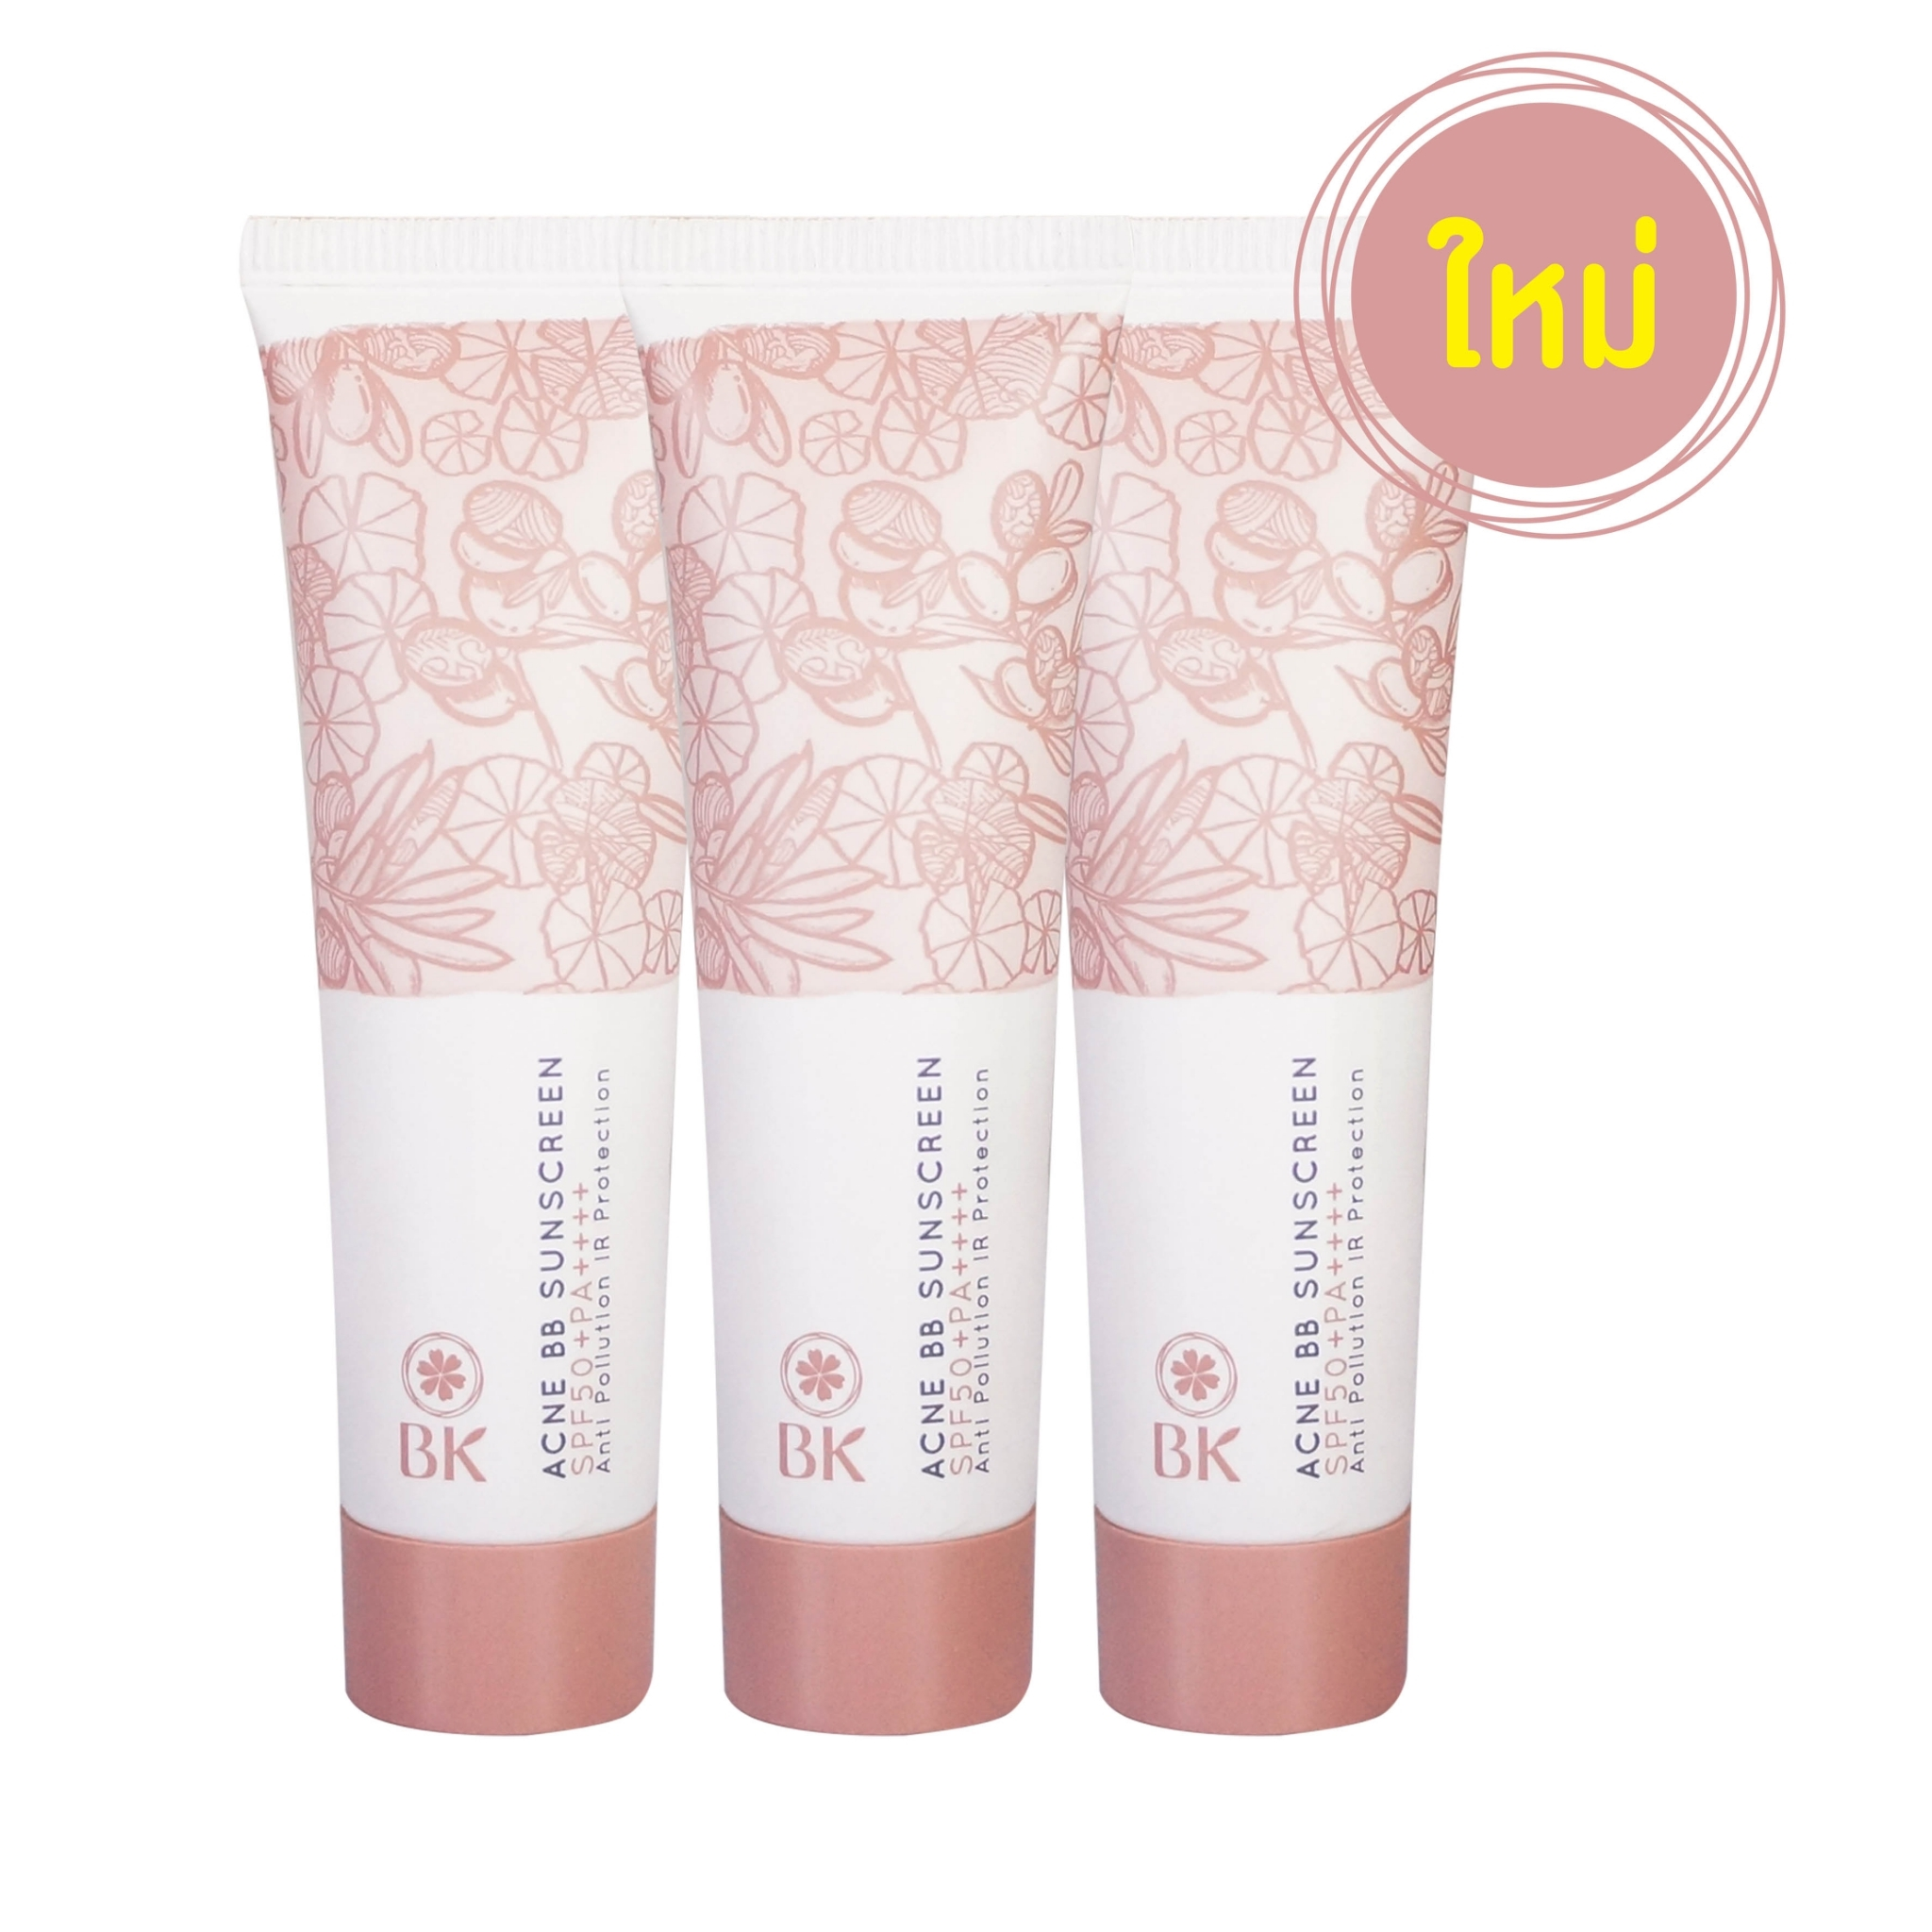 BK Acne BB Sunscreen SPF50+ PA++++ 3 หลอด